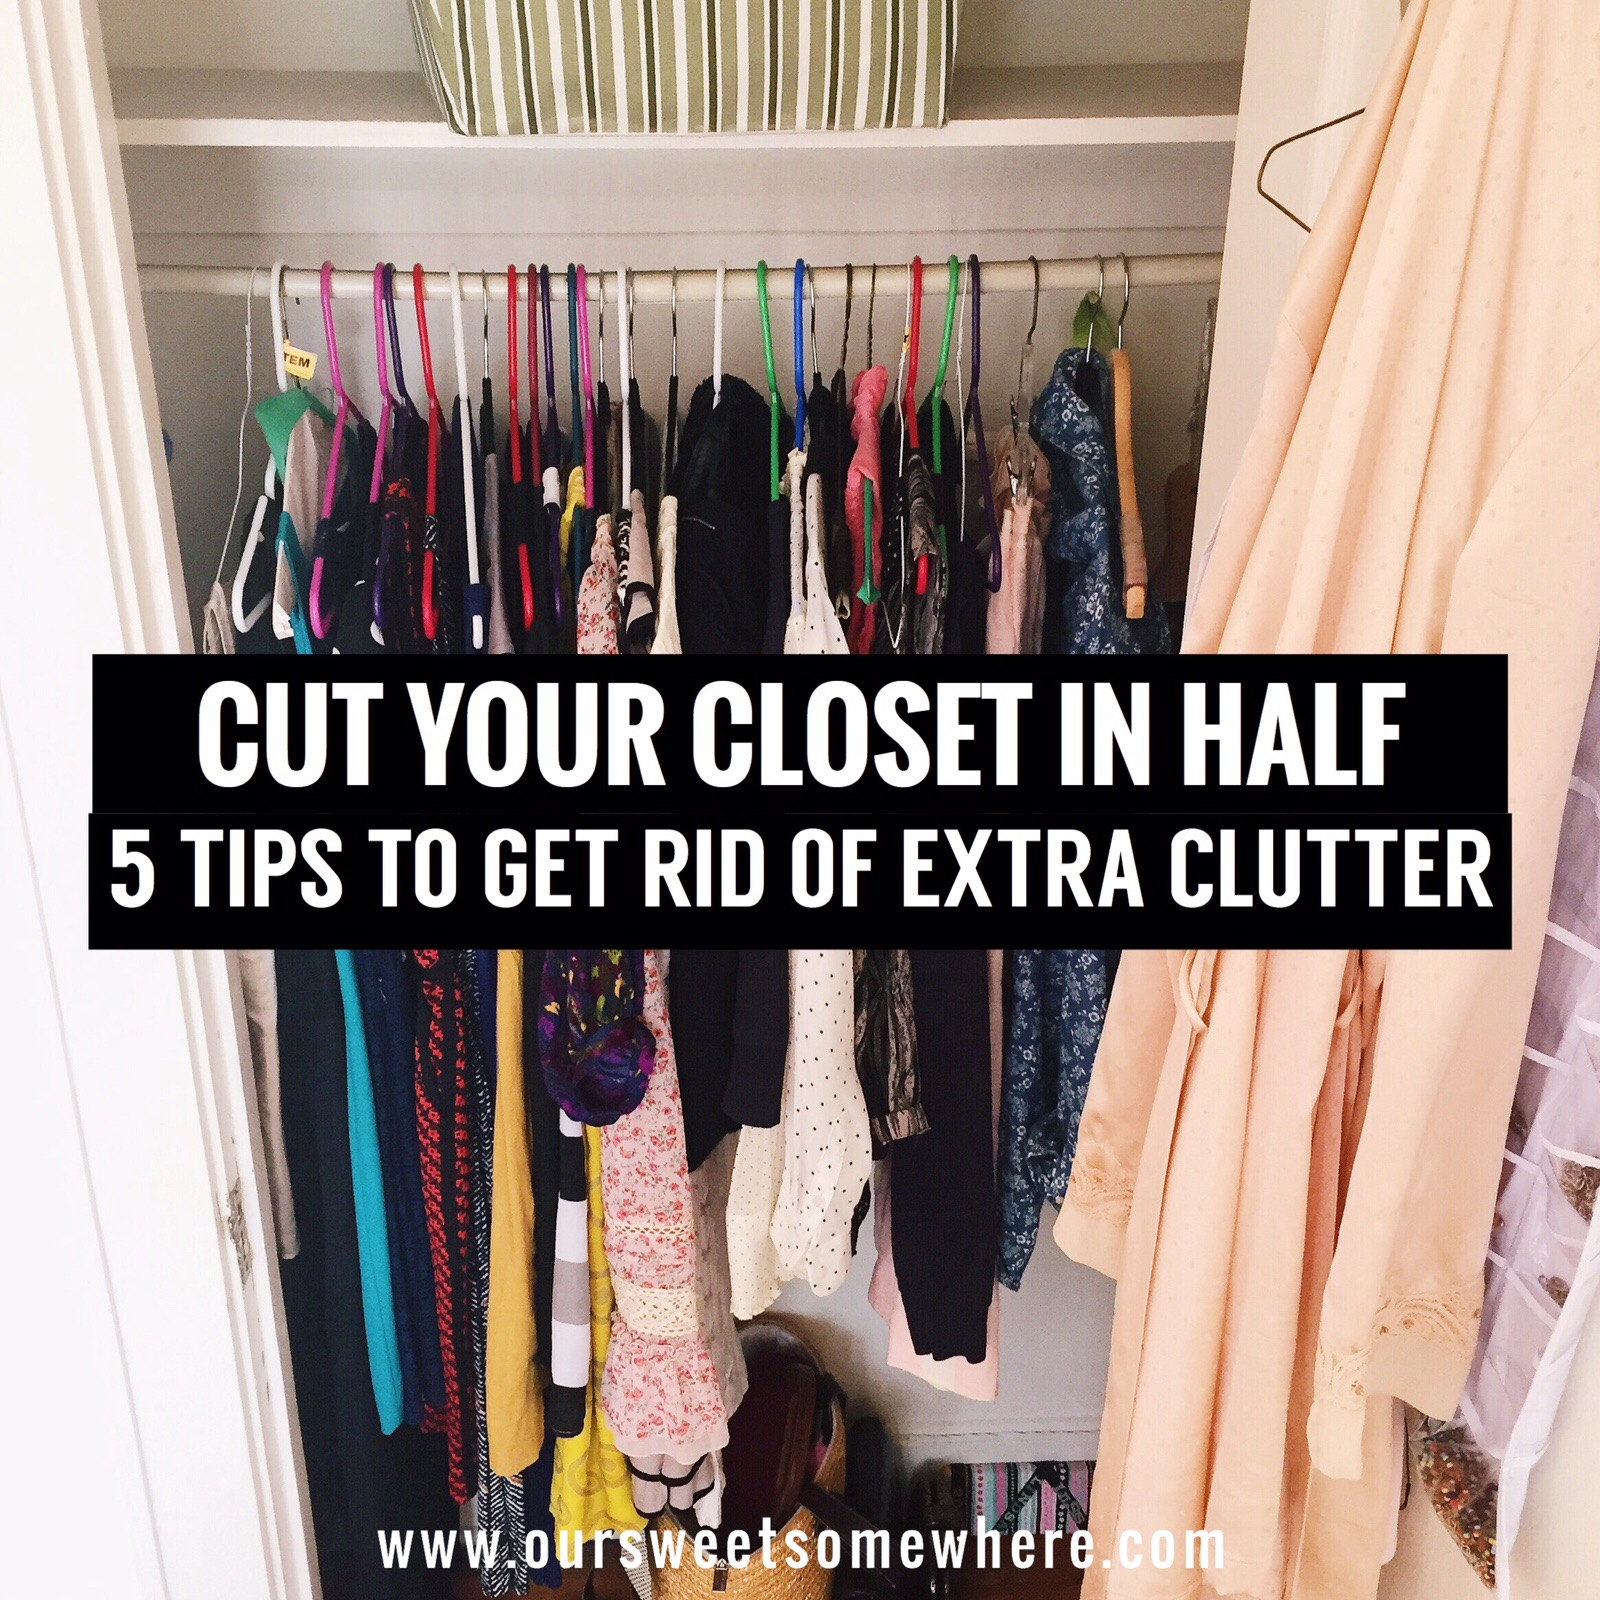 Cut Your Closet In Half 5 Tips To Get Rid Of Extra